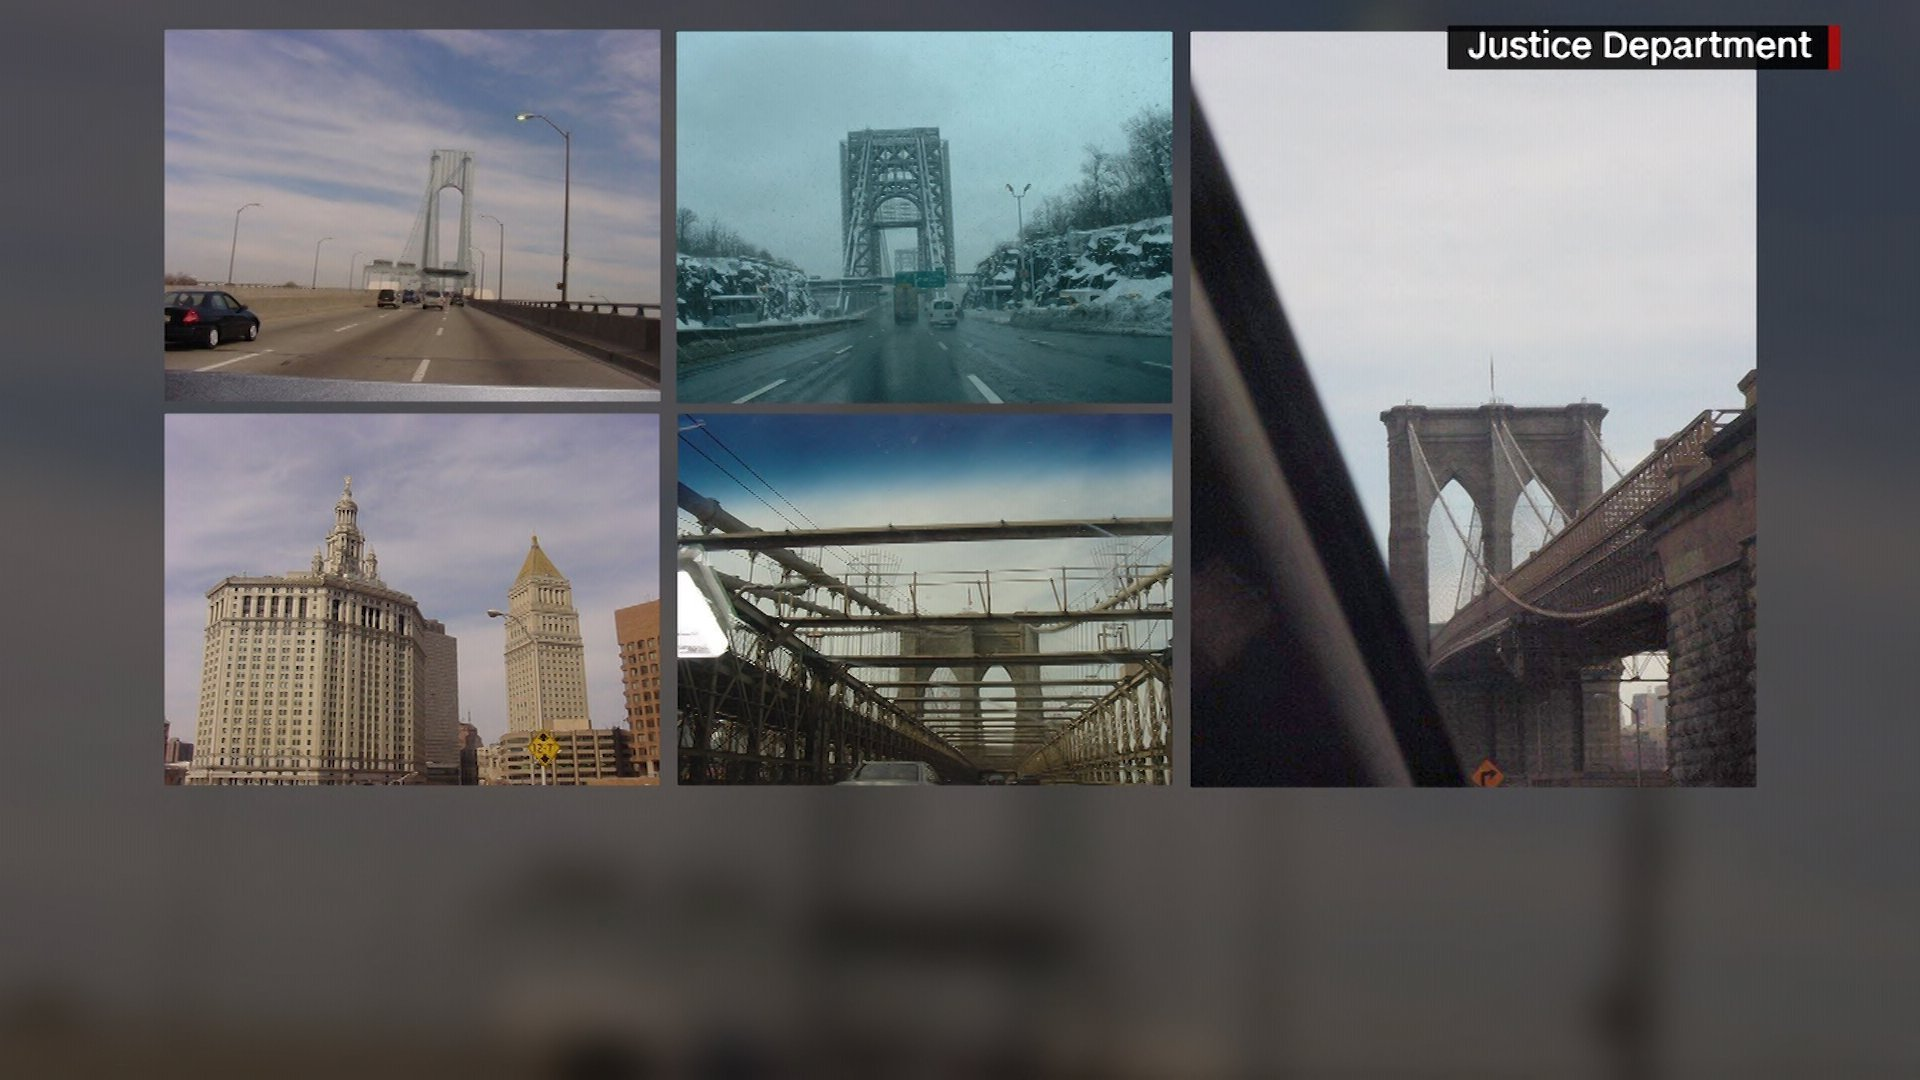 A New Jersey man scouted US landmarks for potential Hezbollah attacks, charges allege